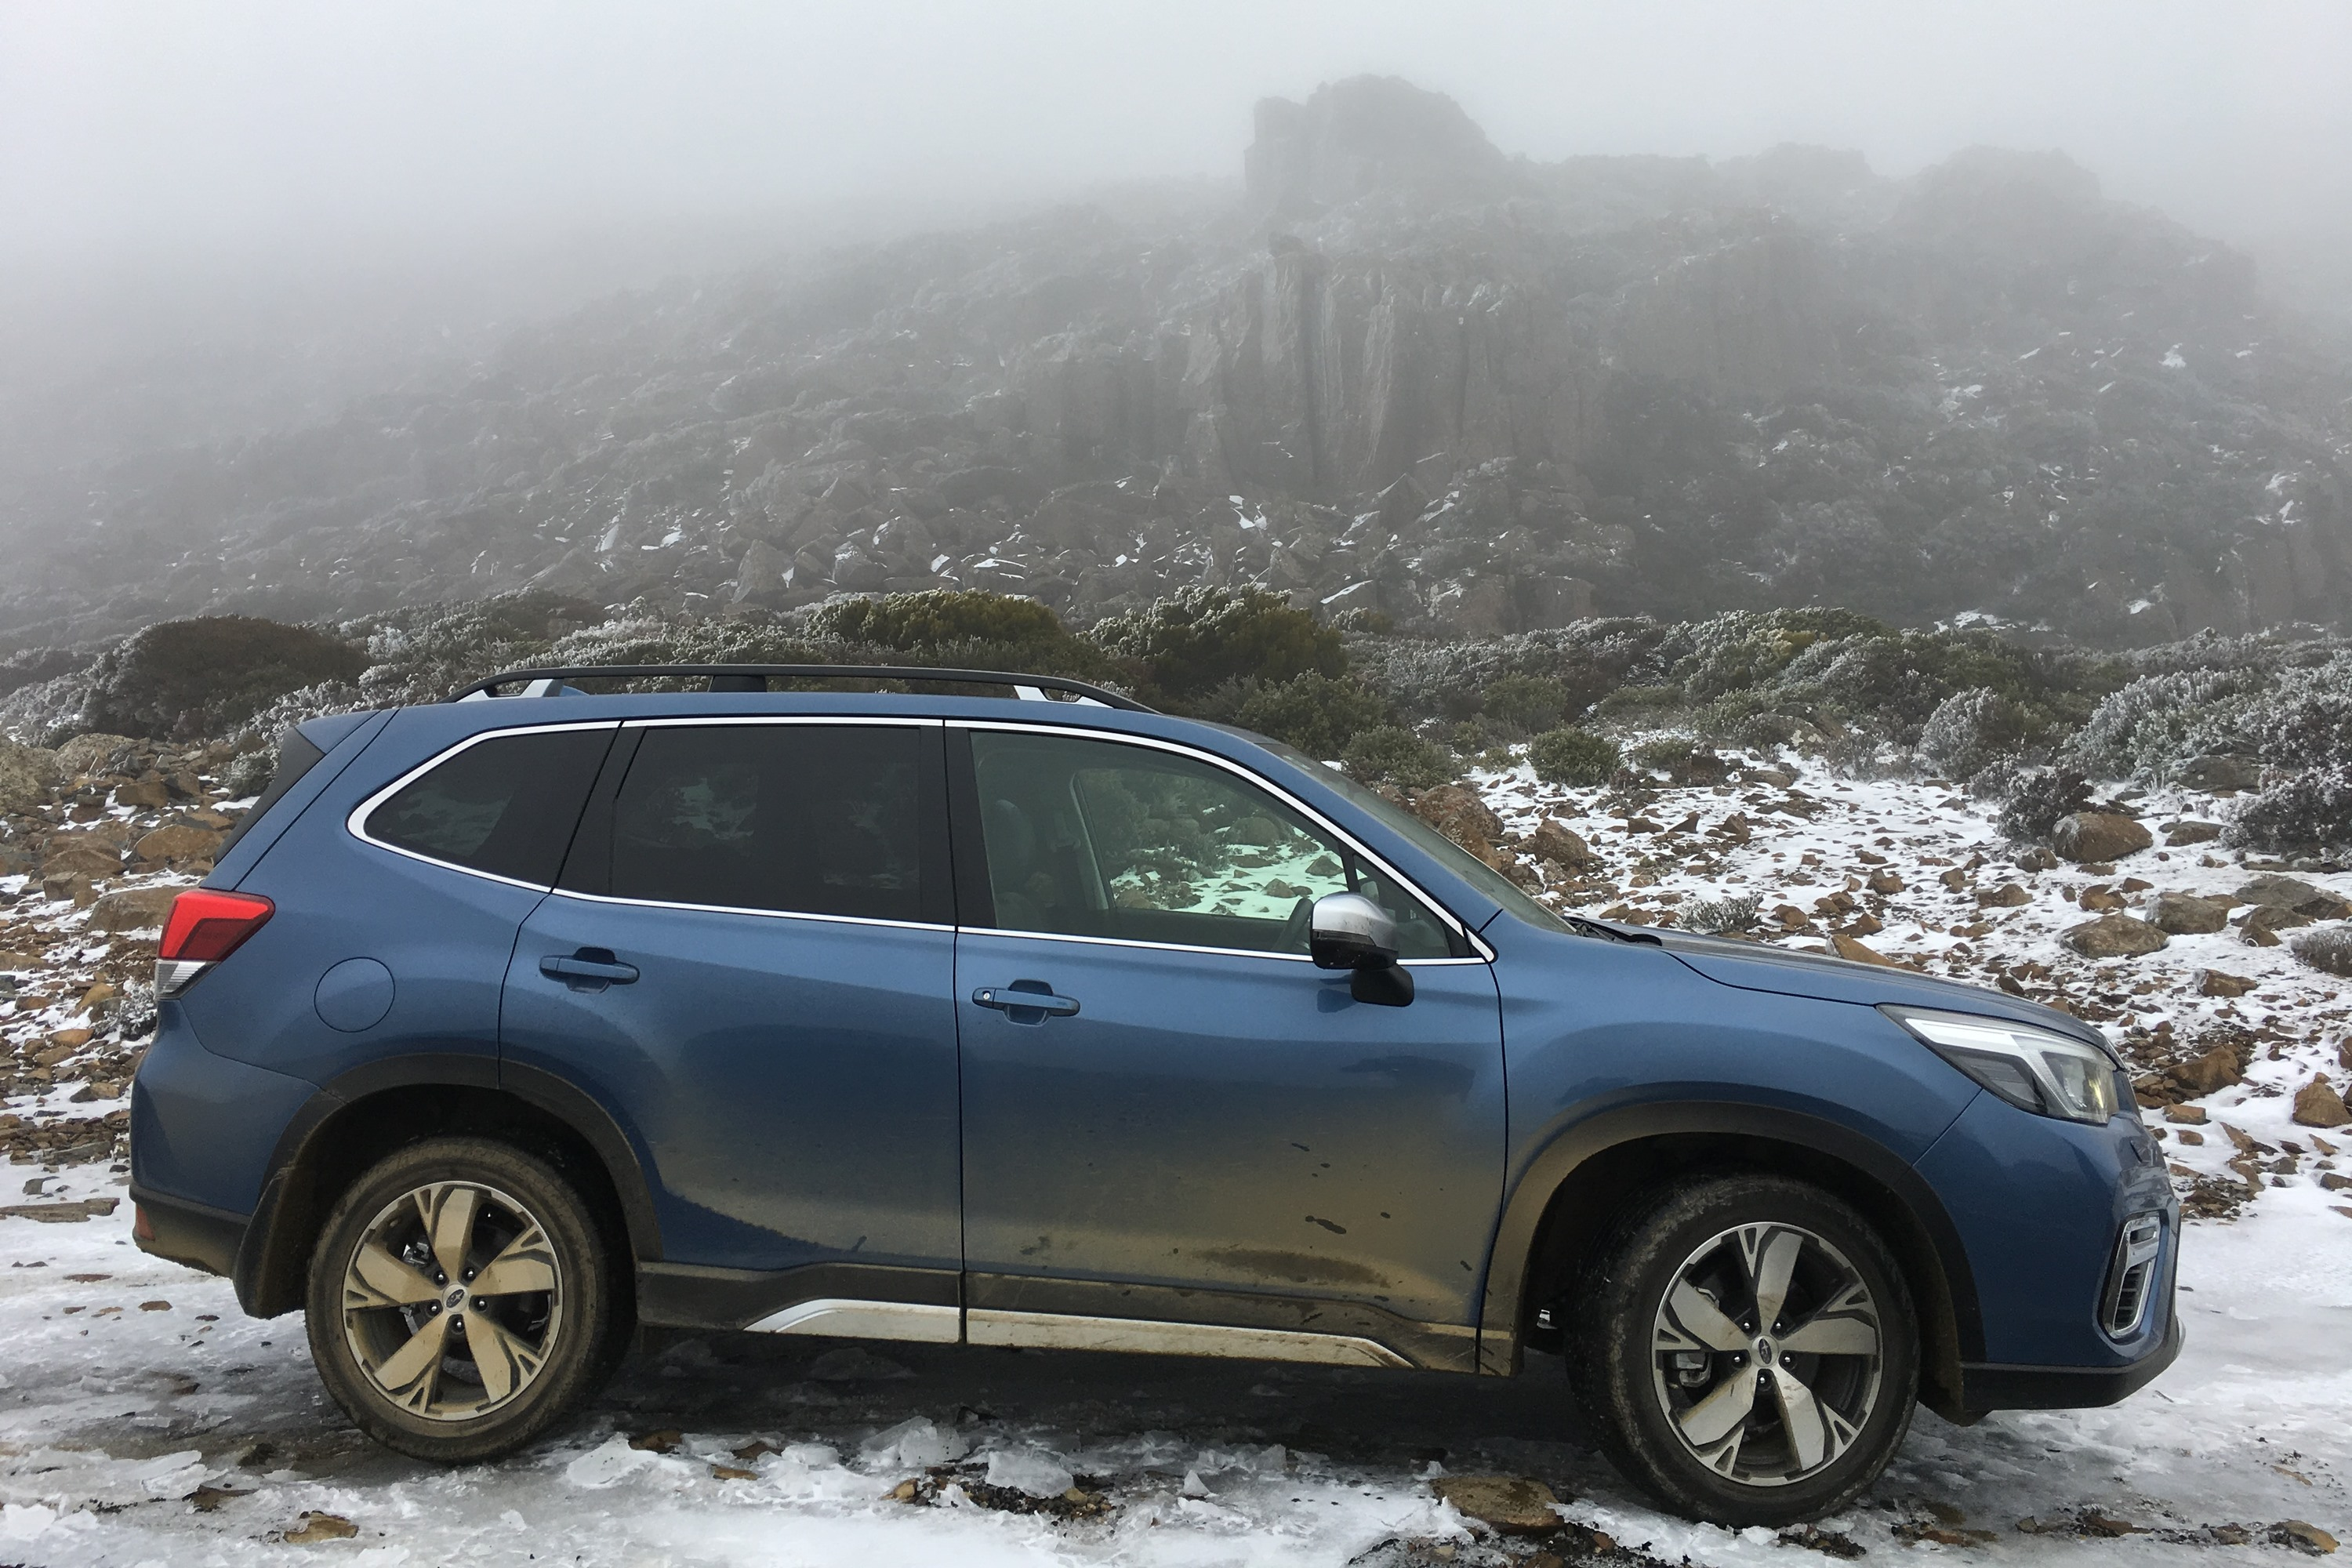 Subaru Forester on top of Jacobs Ladder